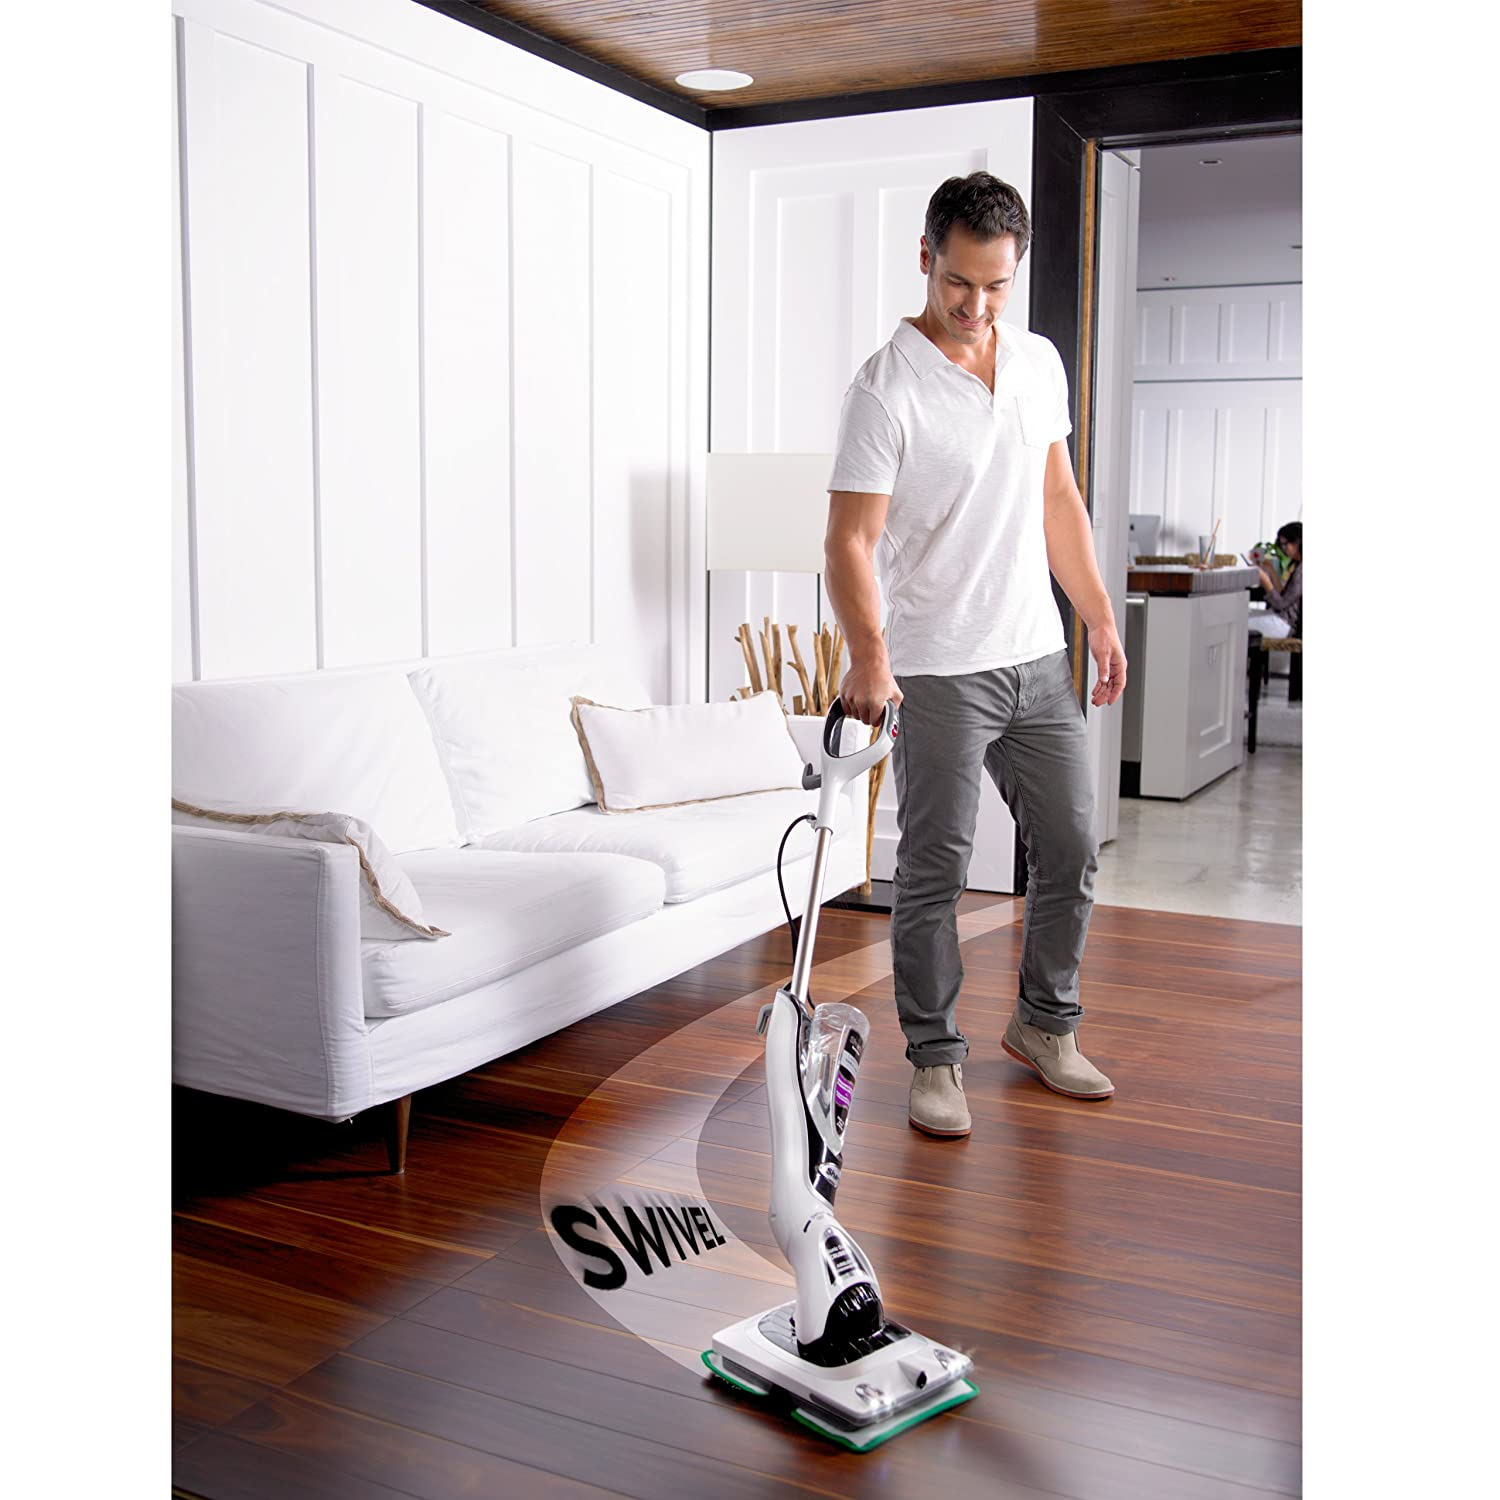 upright of cleaning floors cleaner for buy hardwood floor full vacuum best size